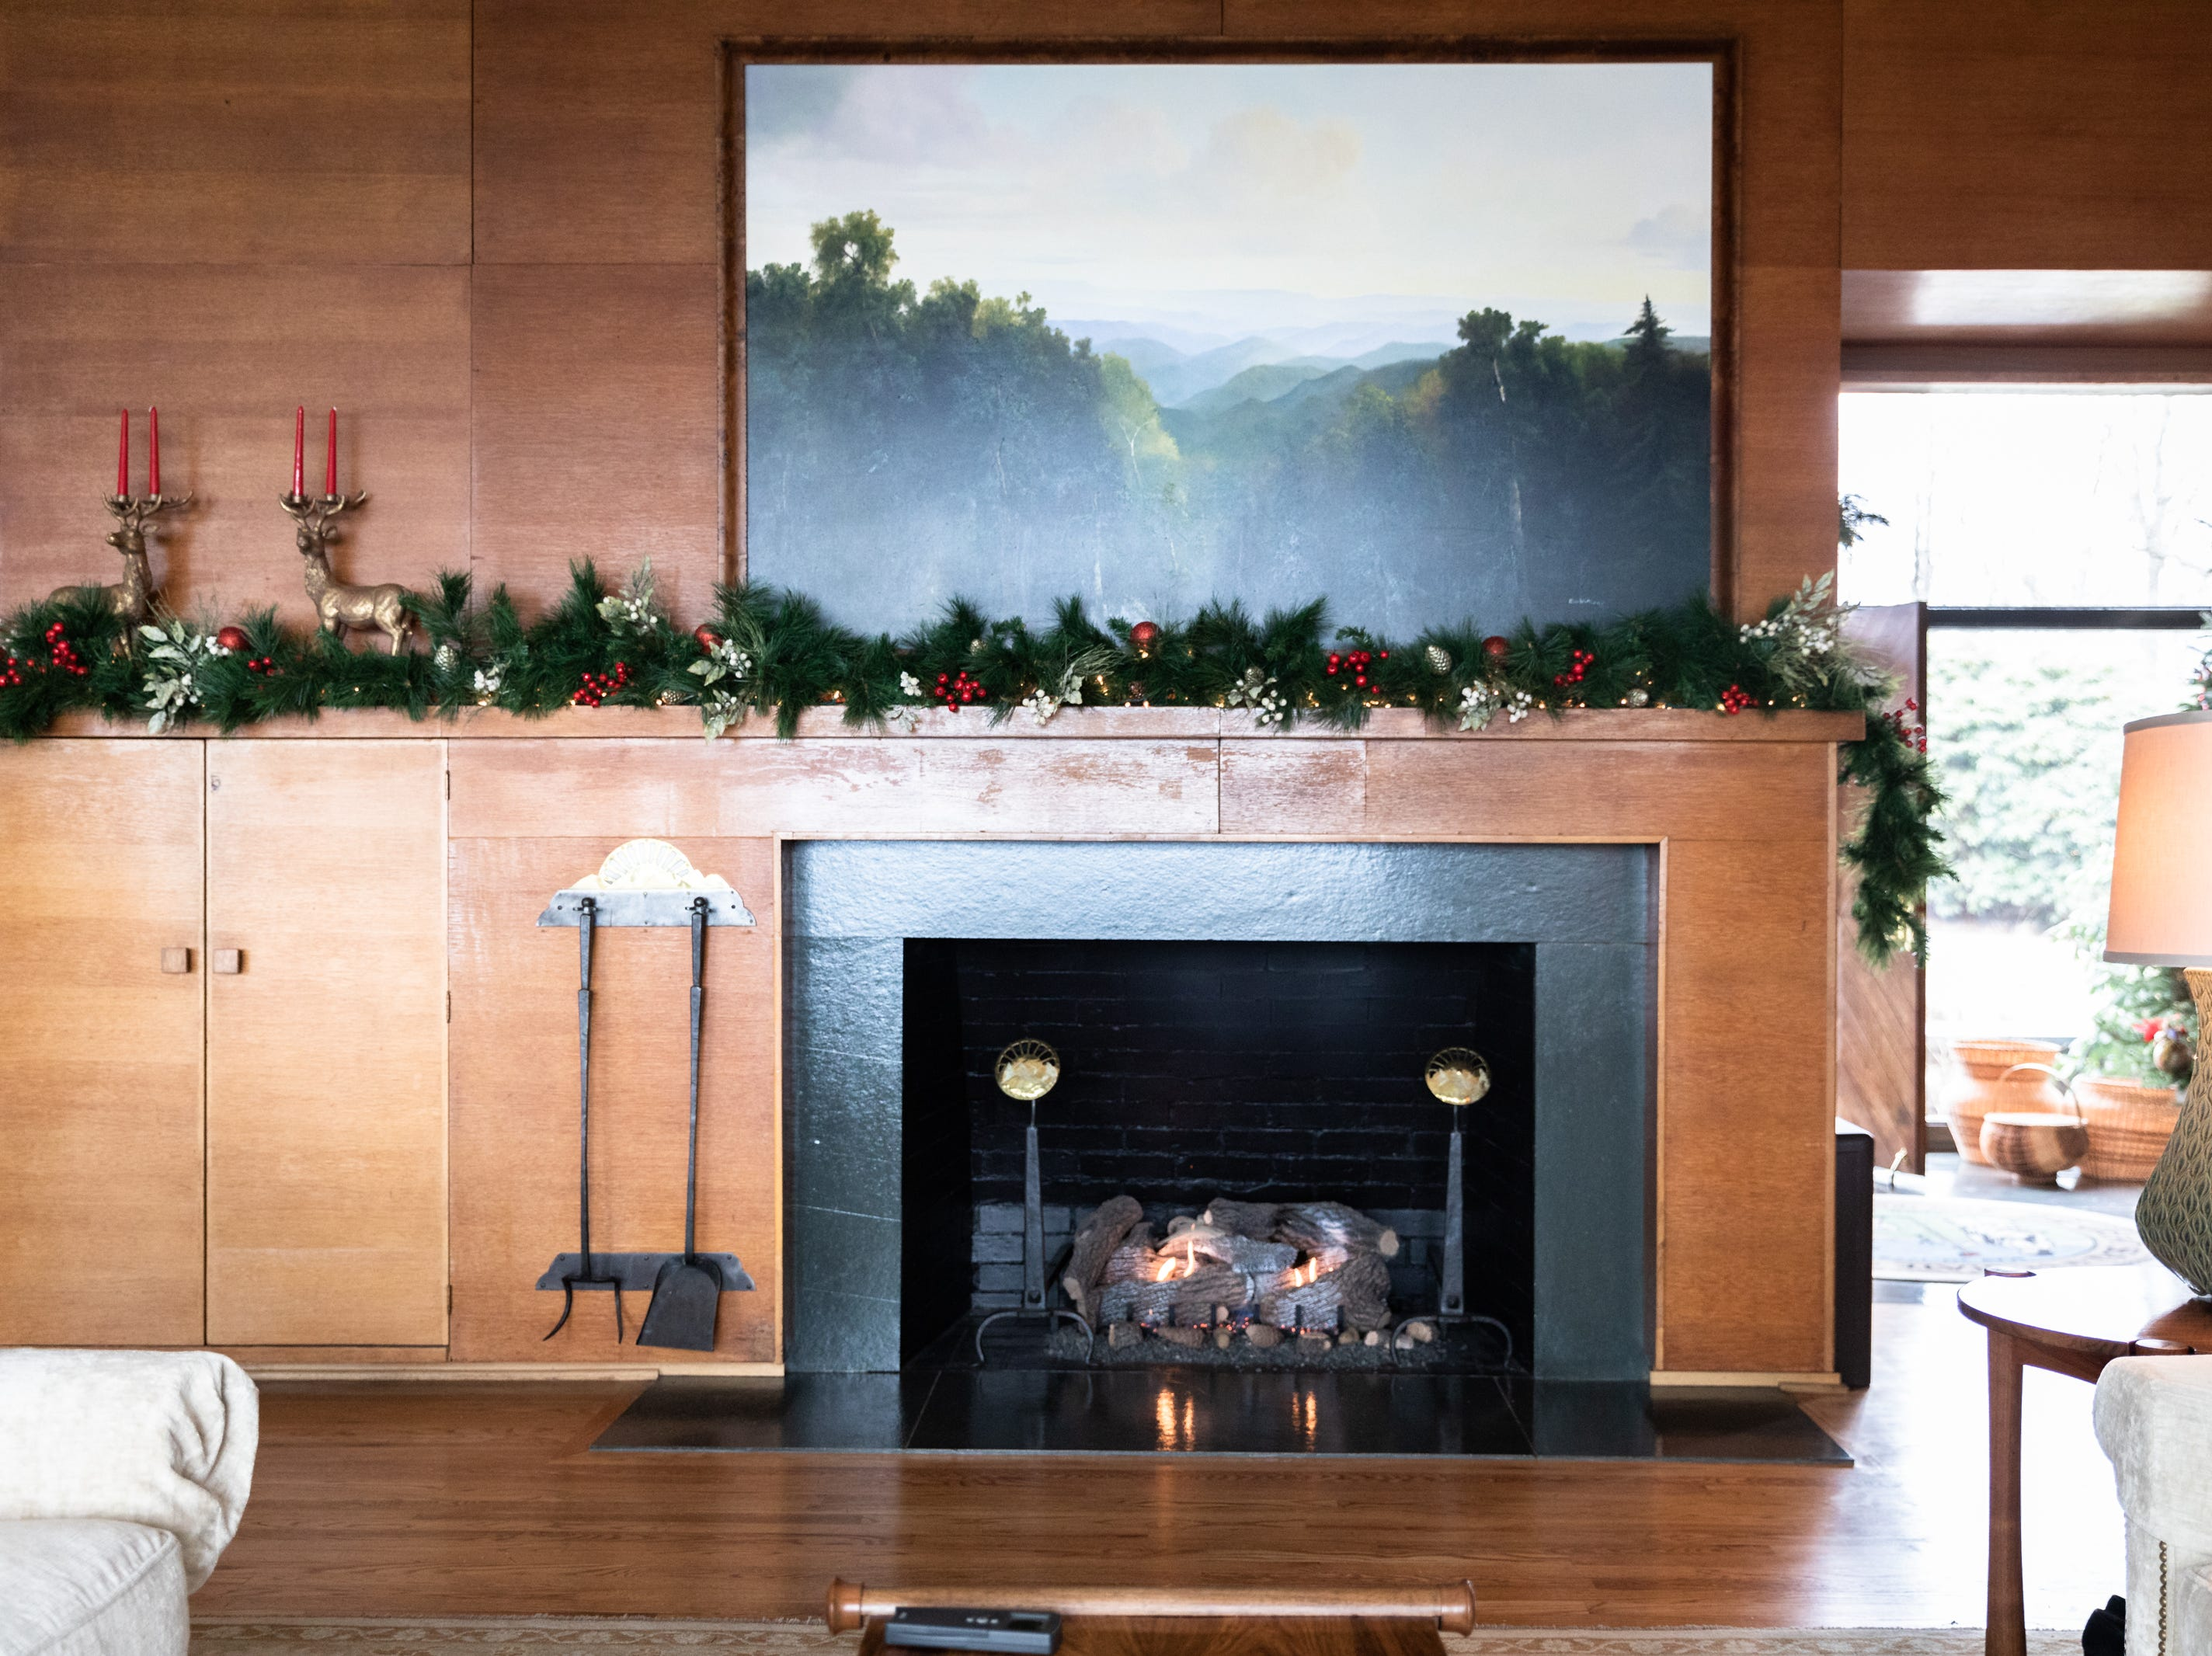 The fireplace in the living room of the Governor's Western Residence on Patton Mountain Road in Asheville, decorated for the holidays.